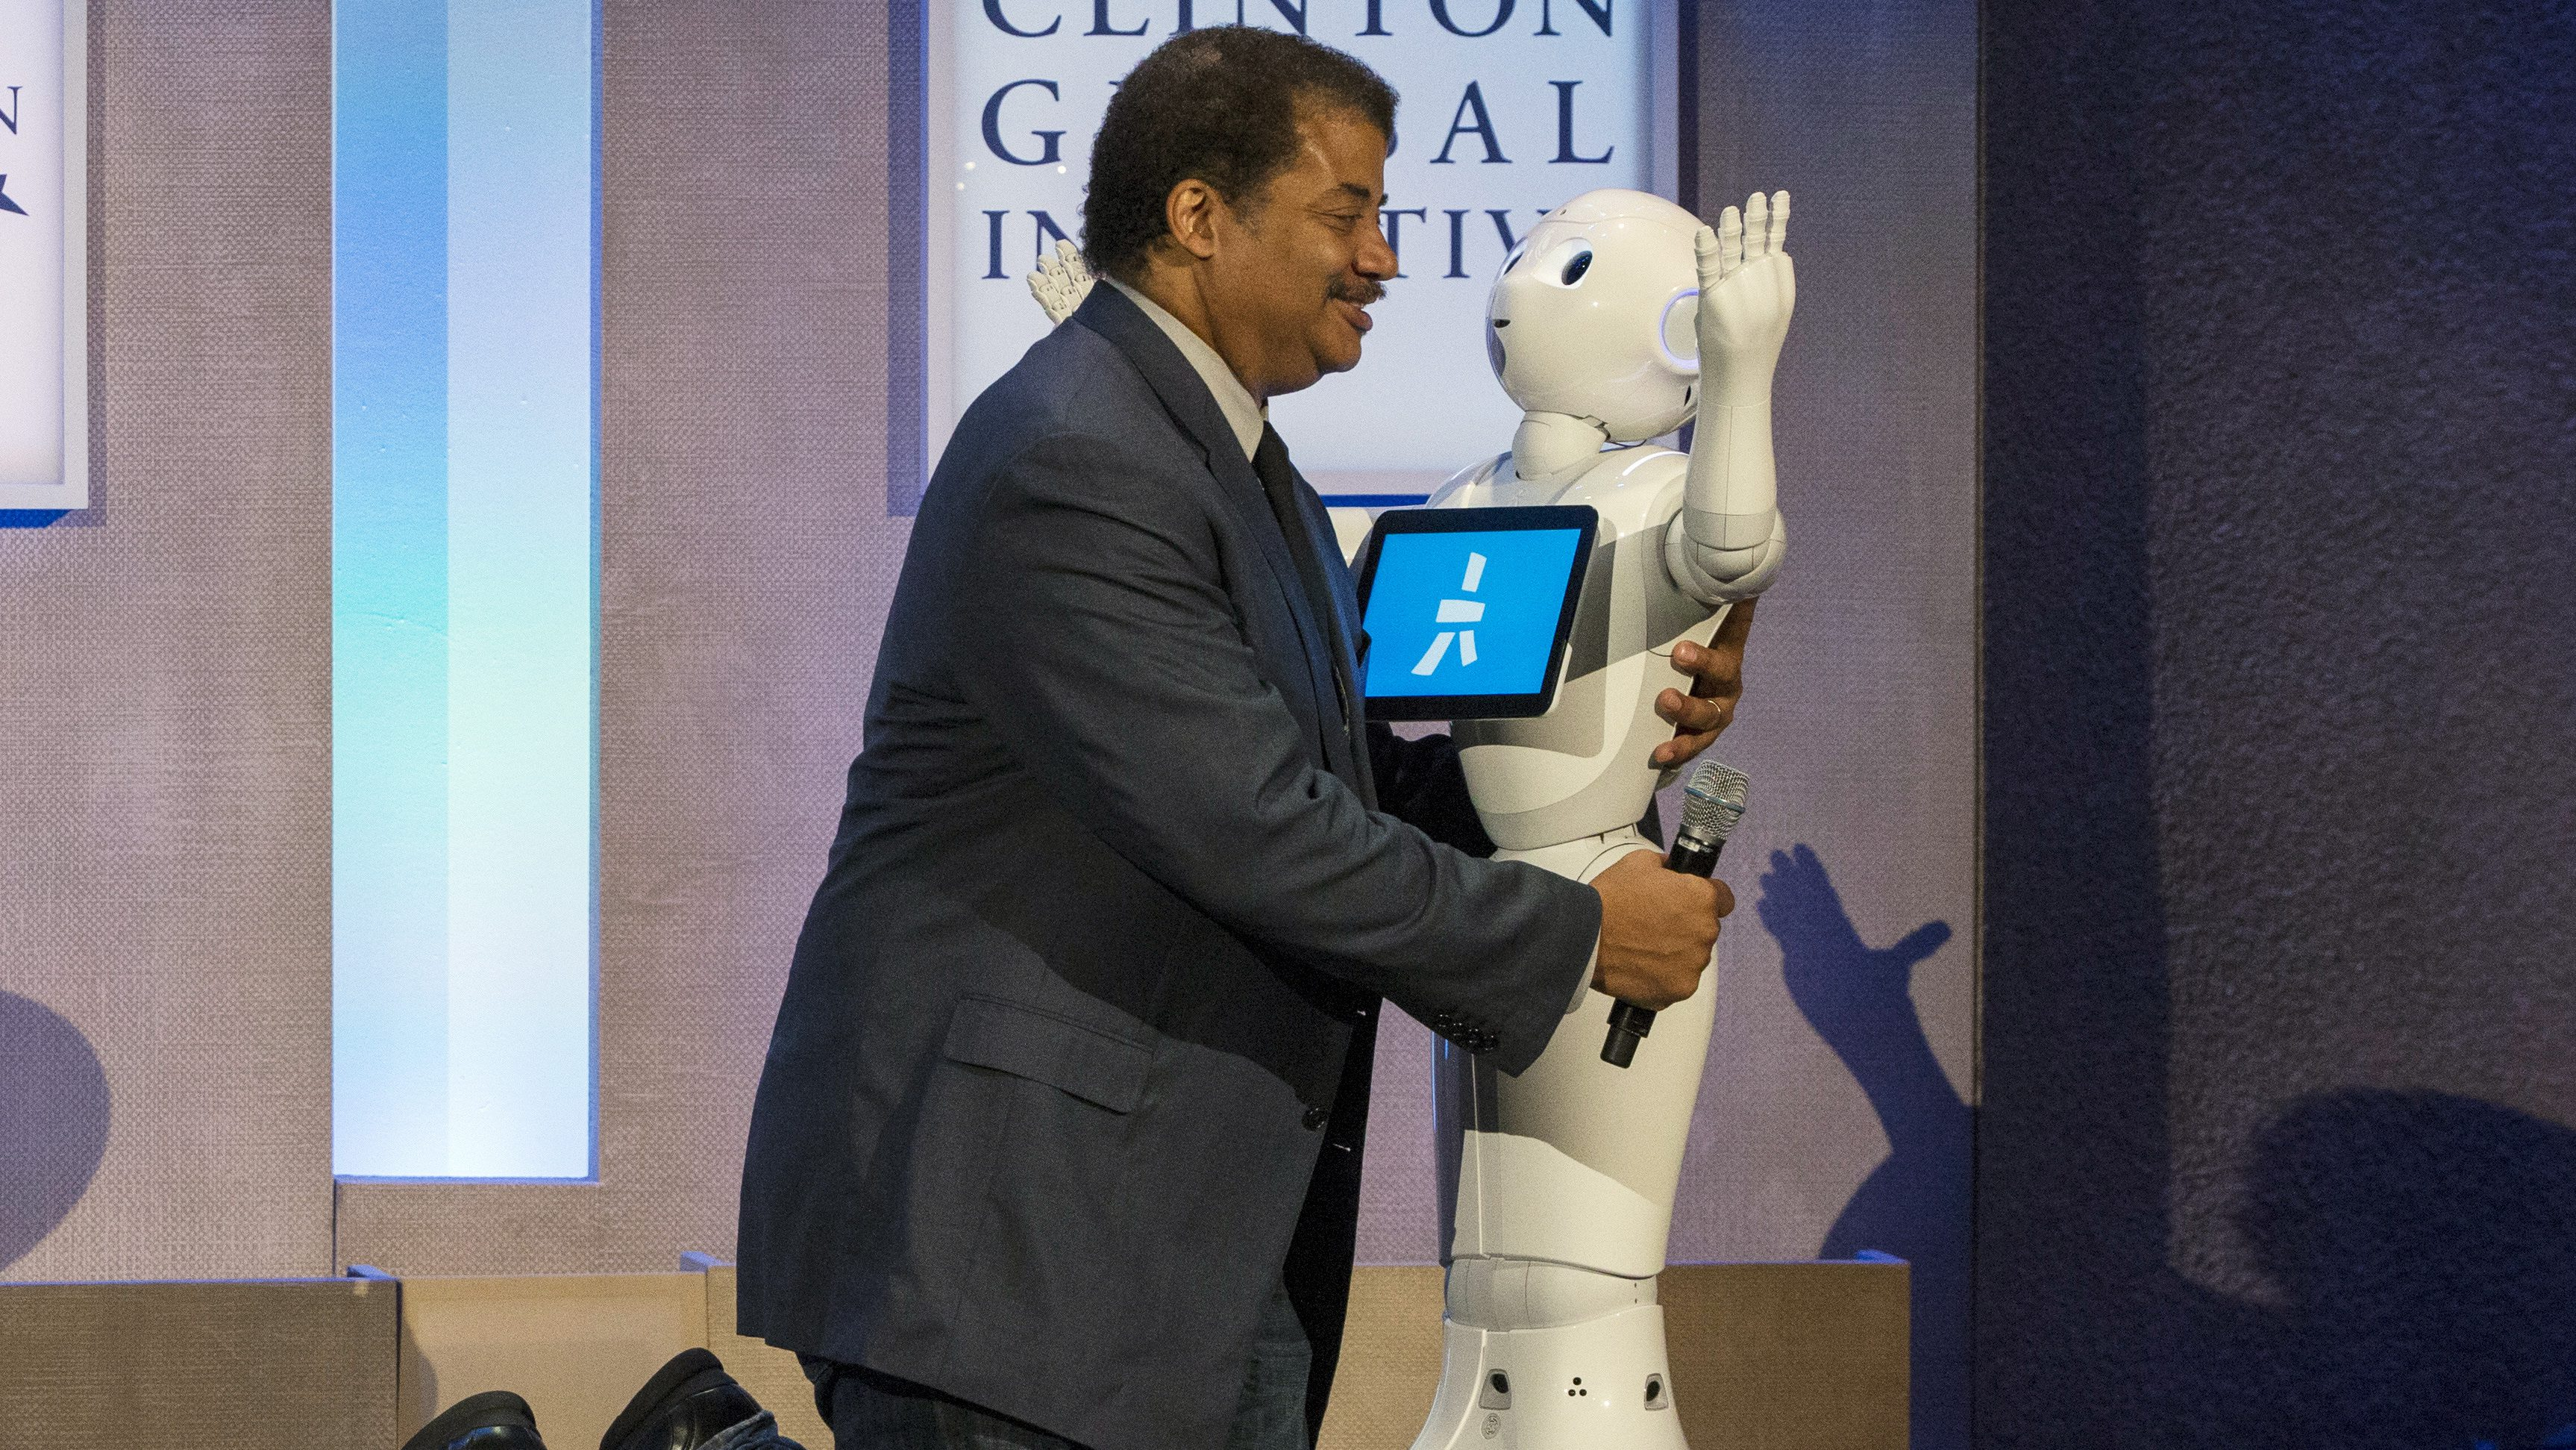 Astrophysicist Neil deGrasse Tyson greets Pepper, a social humanoid robot developed by Aldebaran for SoftBank, on stage during the Clinton Global Initiative's annual meeting in New York, September 28, 2015.  REUTERS/Brendan McDermid       TPX IMAGES OF THE DAY      - GF10000225493